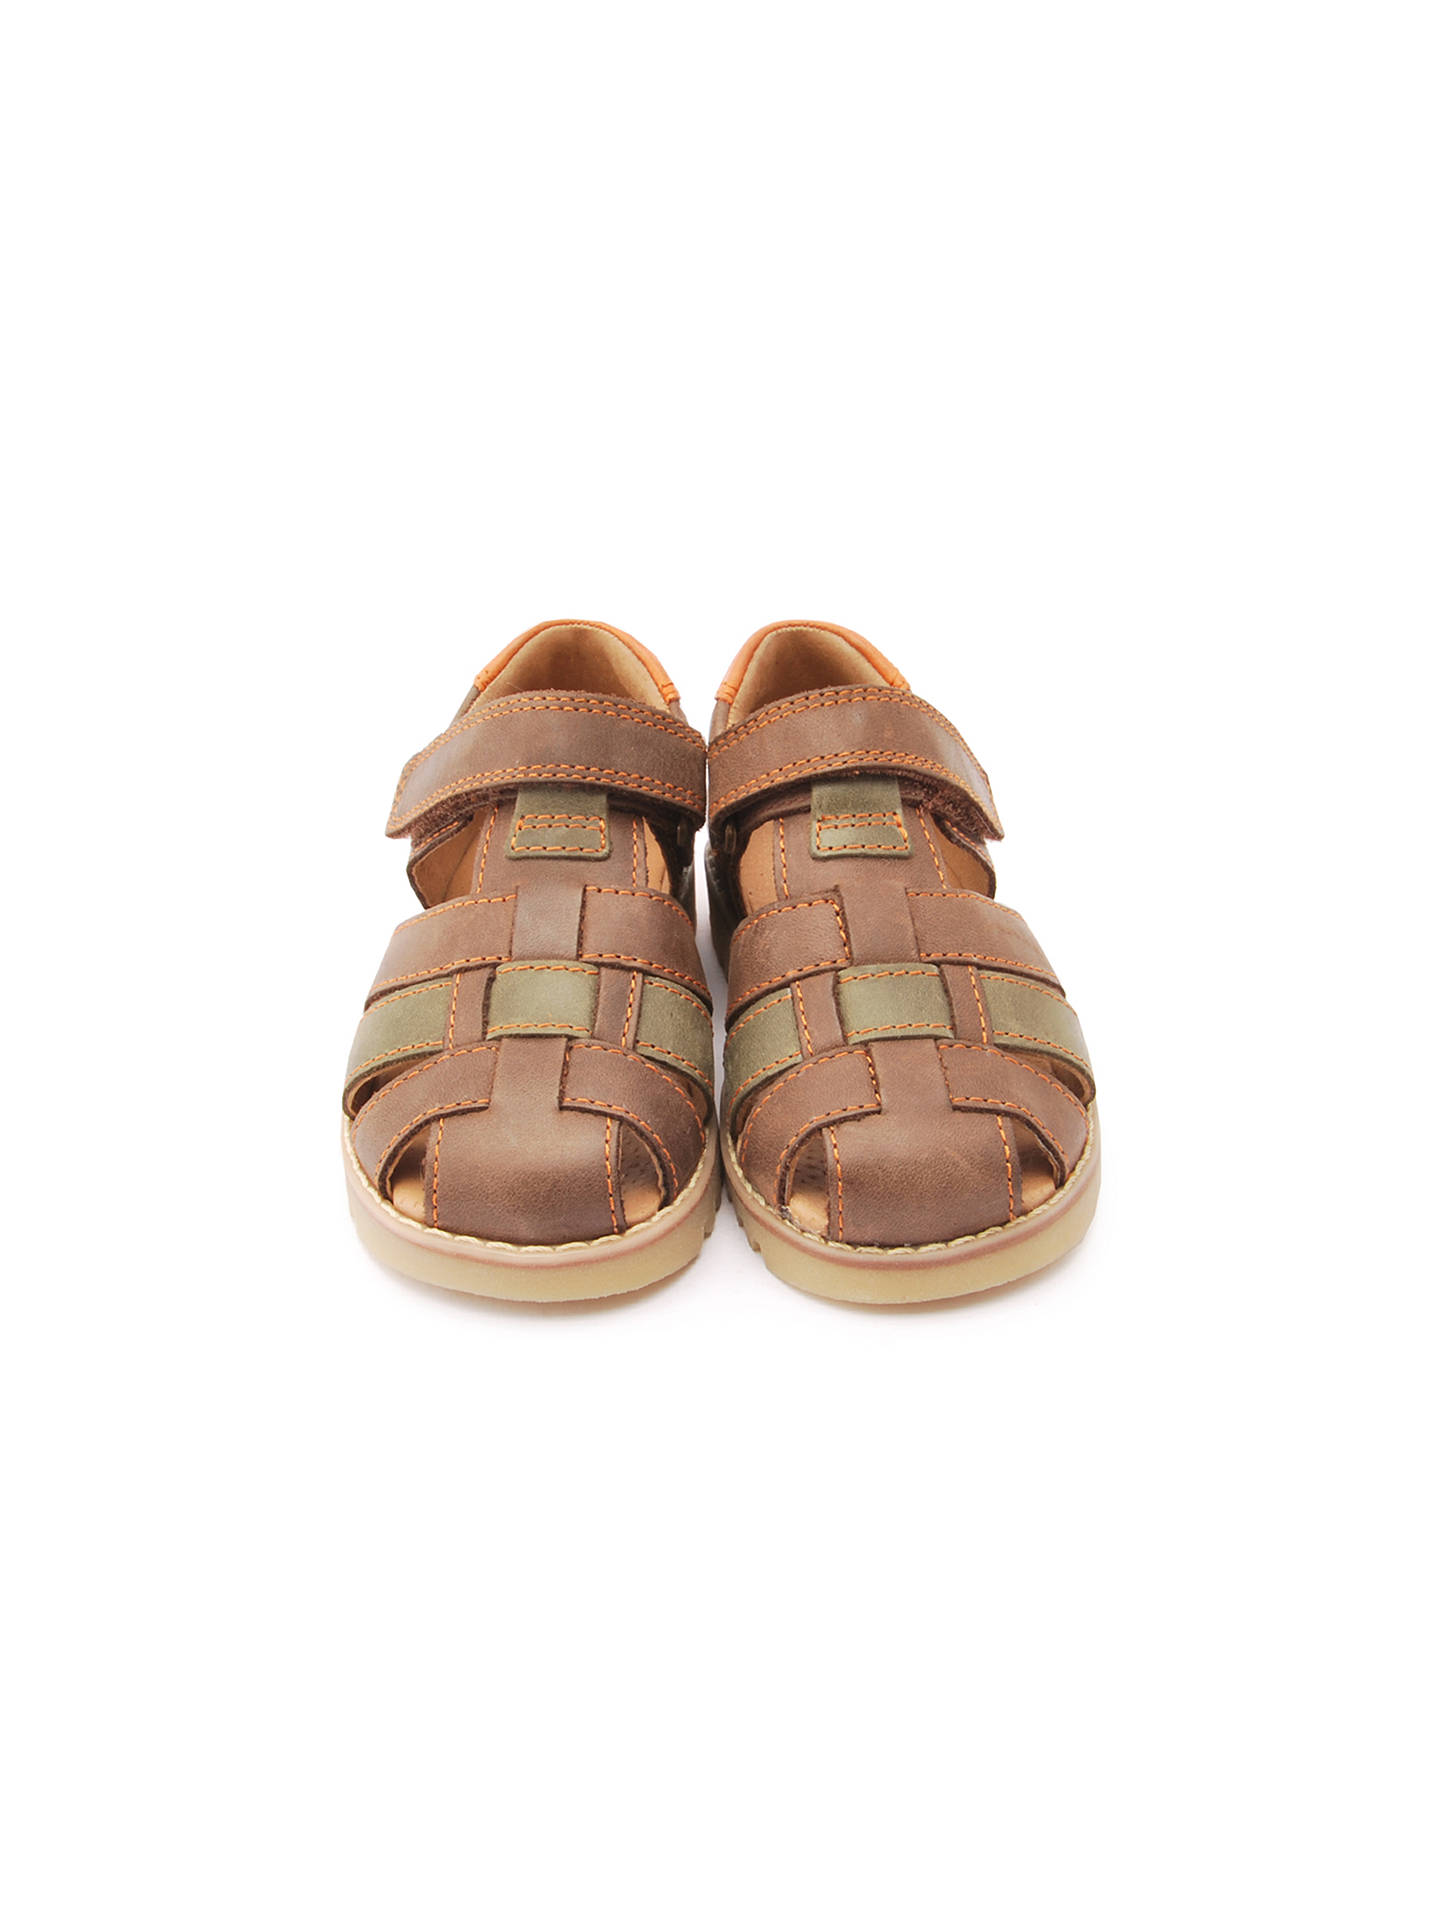 Buy Start-rite Children's Climb Leather Riptape Sandals, Brown, 20F Online at johnlewis.com